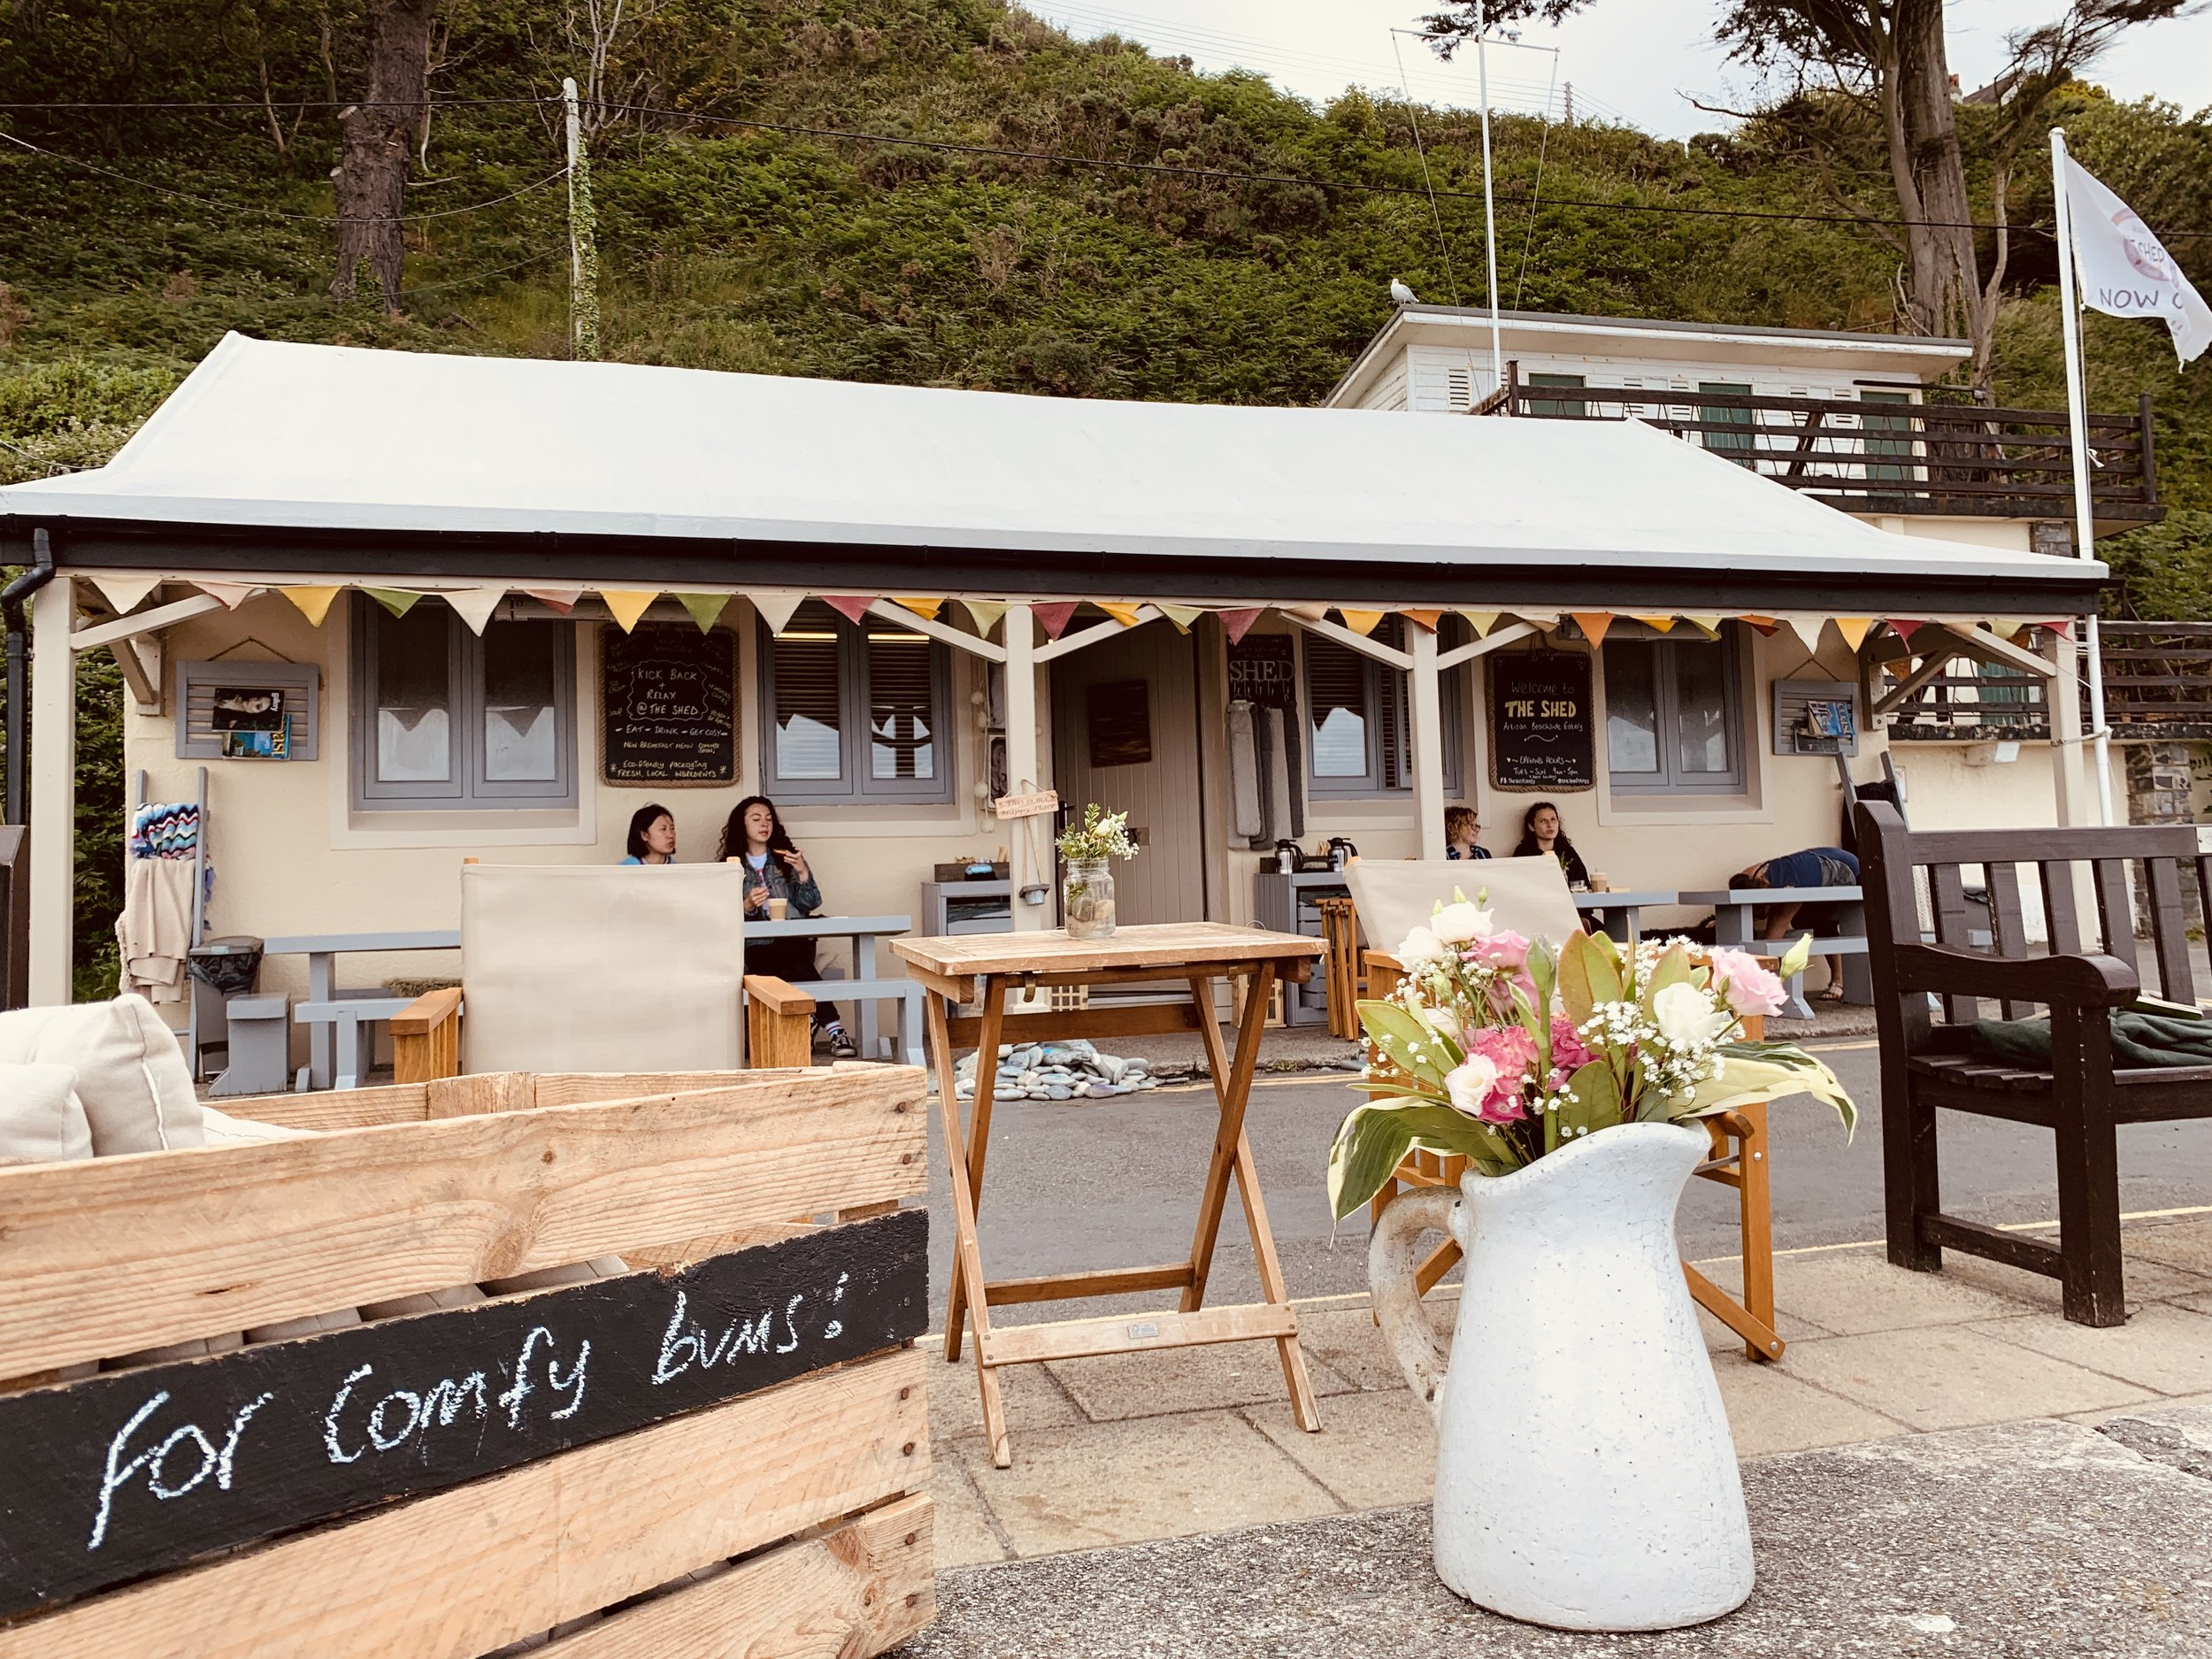 - The Shed in Laxey, Isle of Man, serves seriously good coffee and provides cushions (and cosy blankets in the winter) so that you can relax on the sea-wall to drink it.